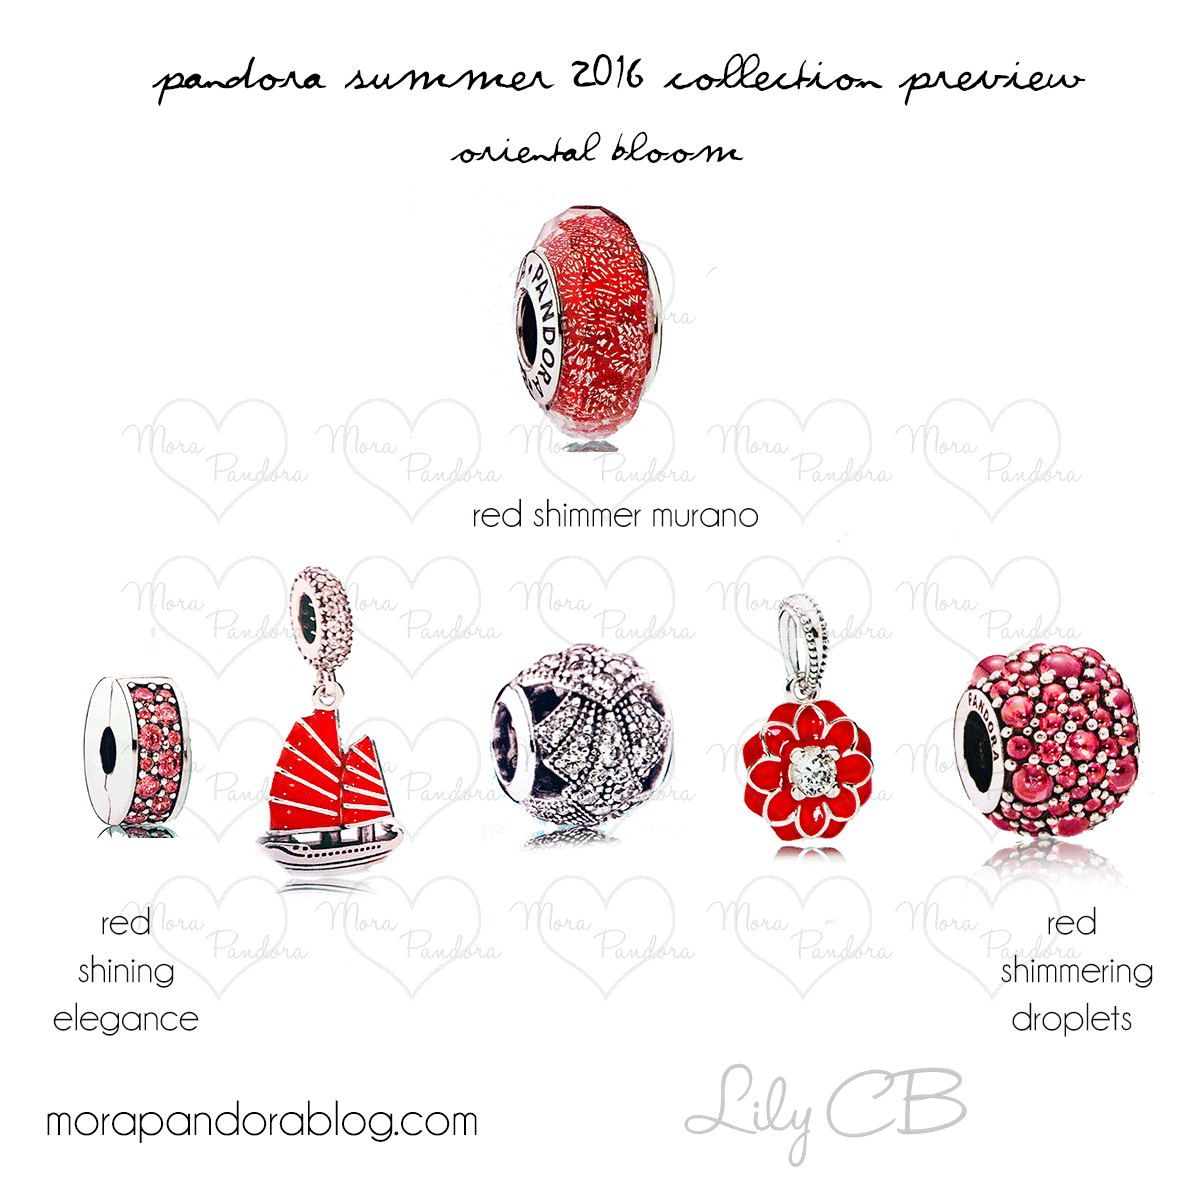 Pandora Jewelry Collection: Pandora Summer 2016 Collection Preview